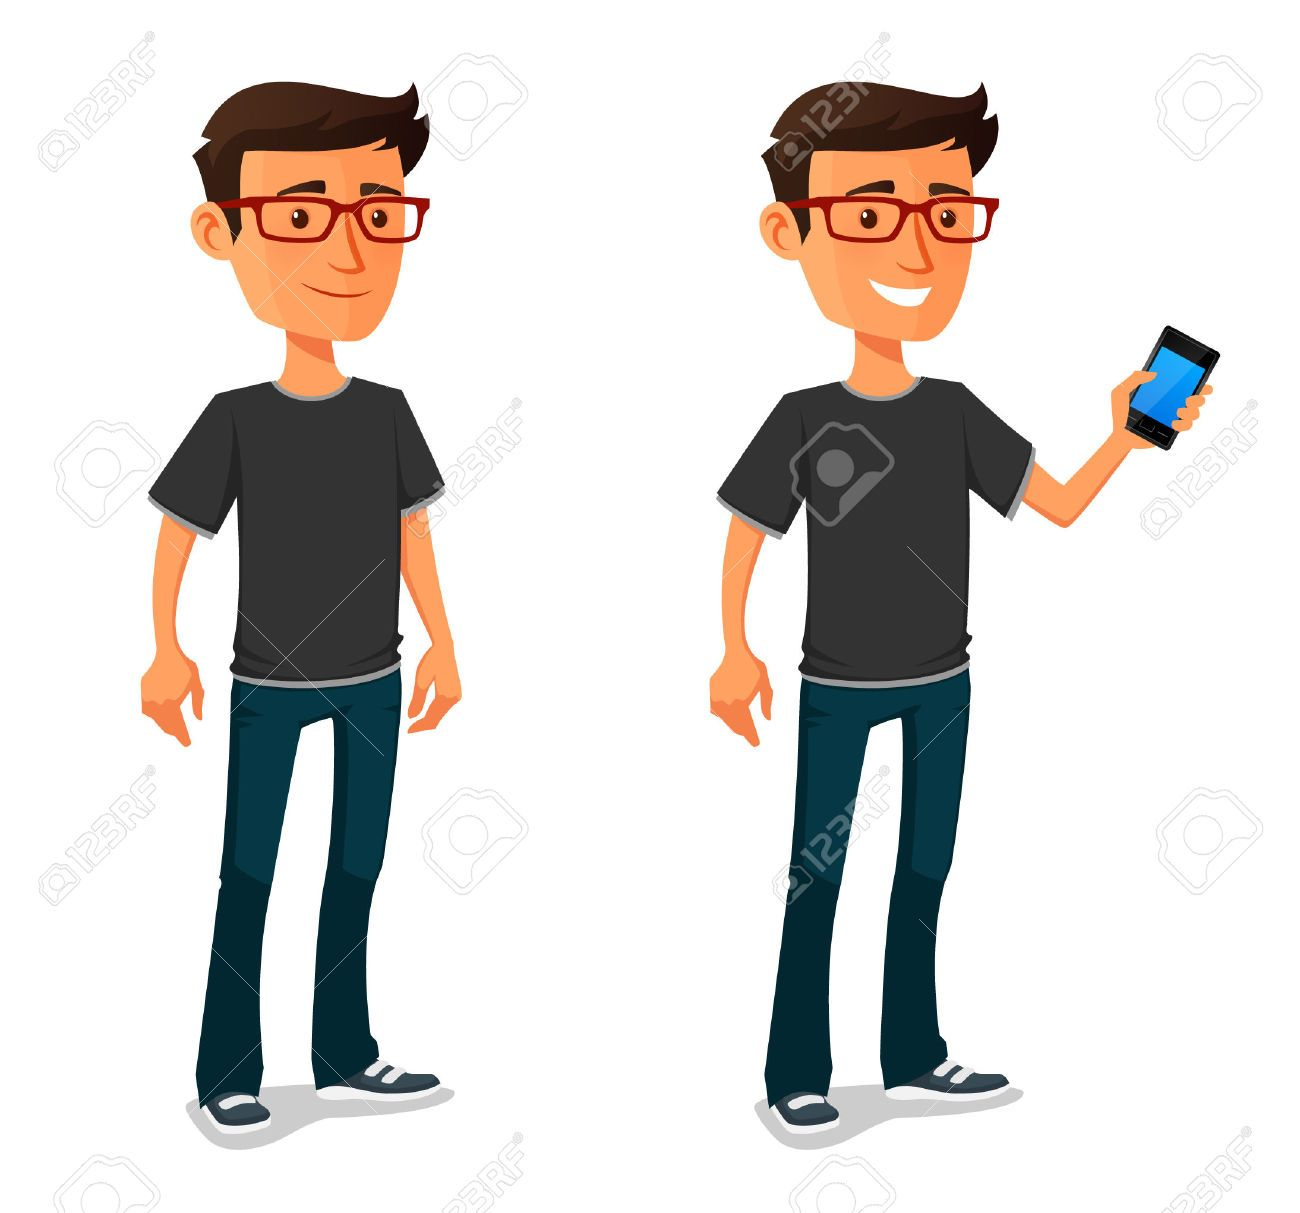 Cartoon Characters Guys : Funny cartoon guy with mobile phone stock vector